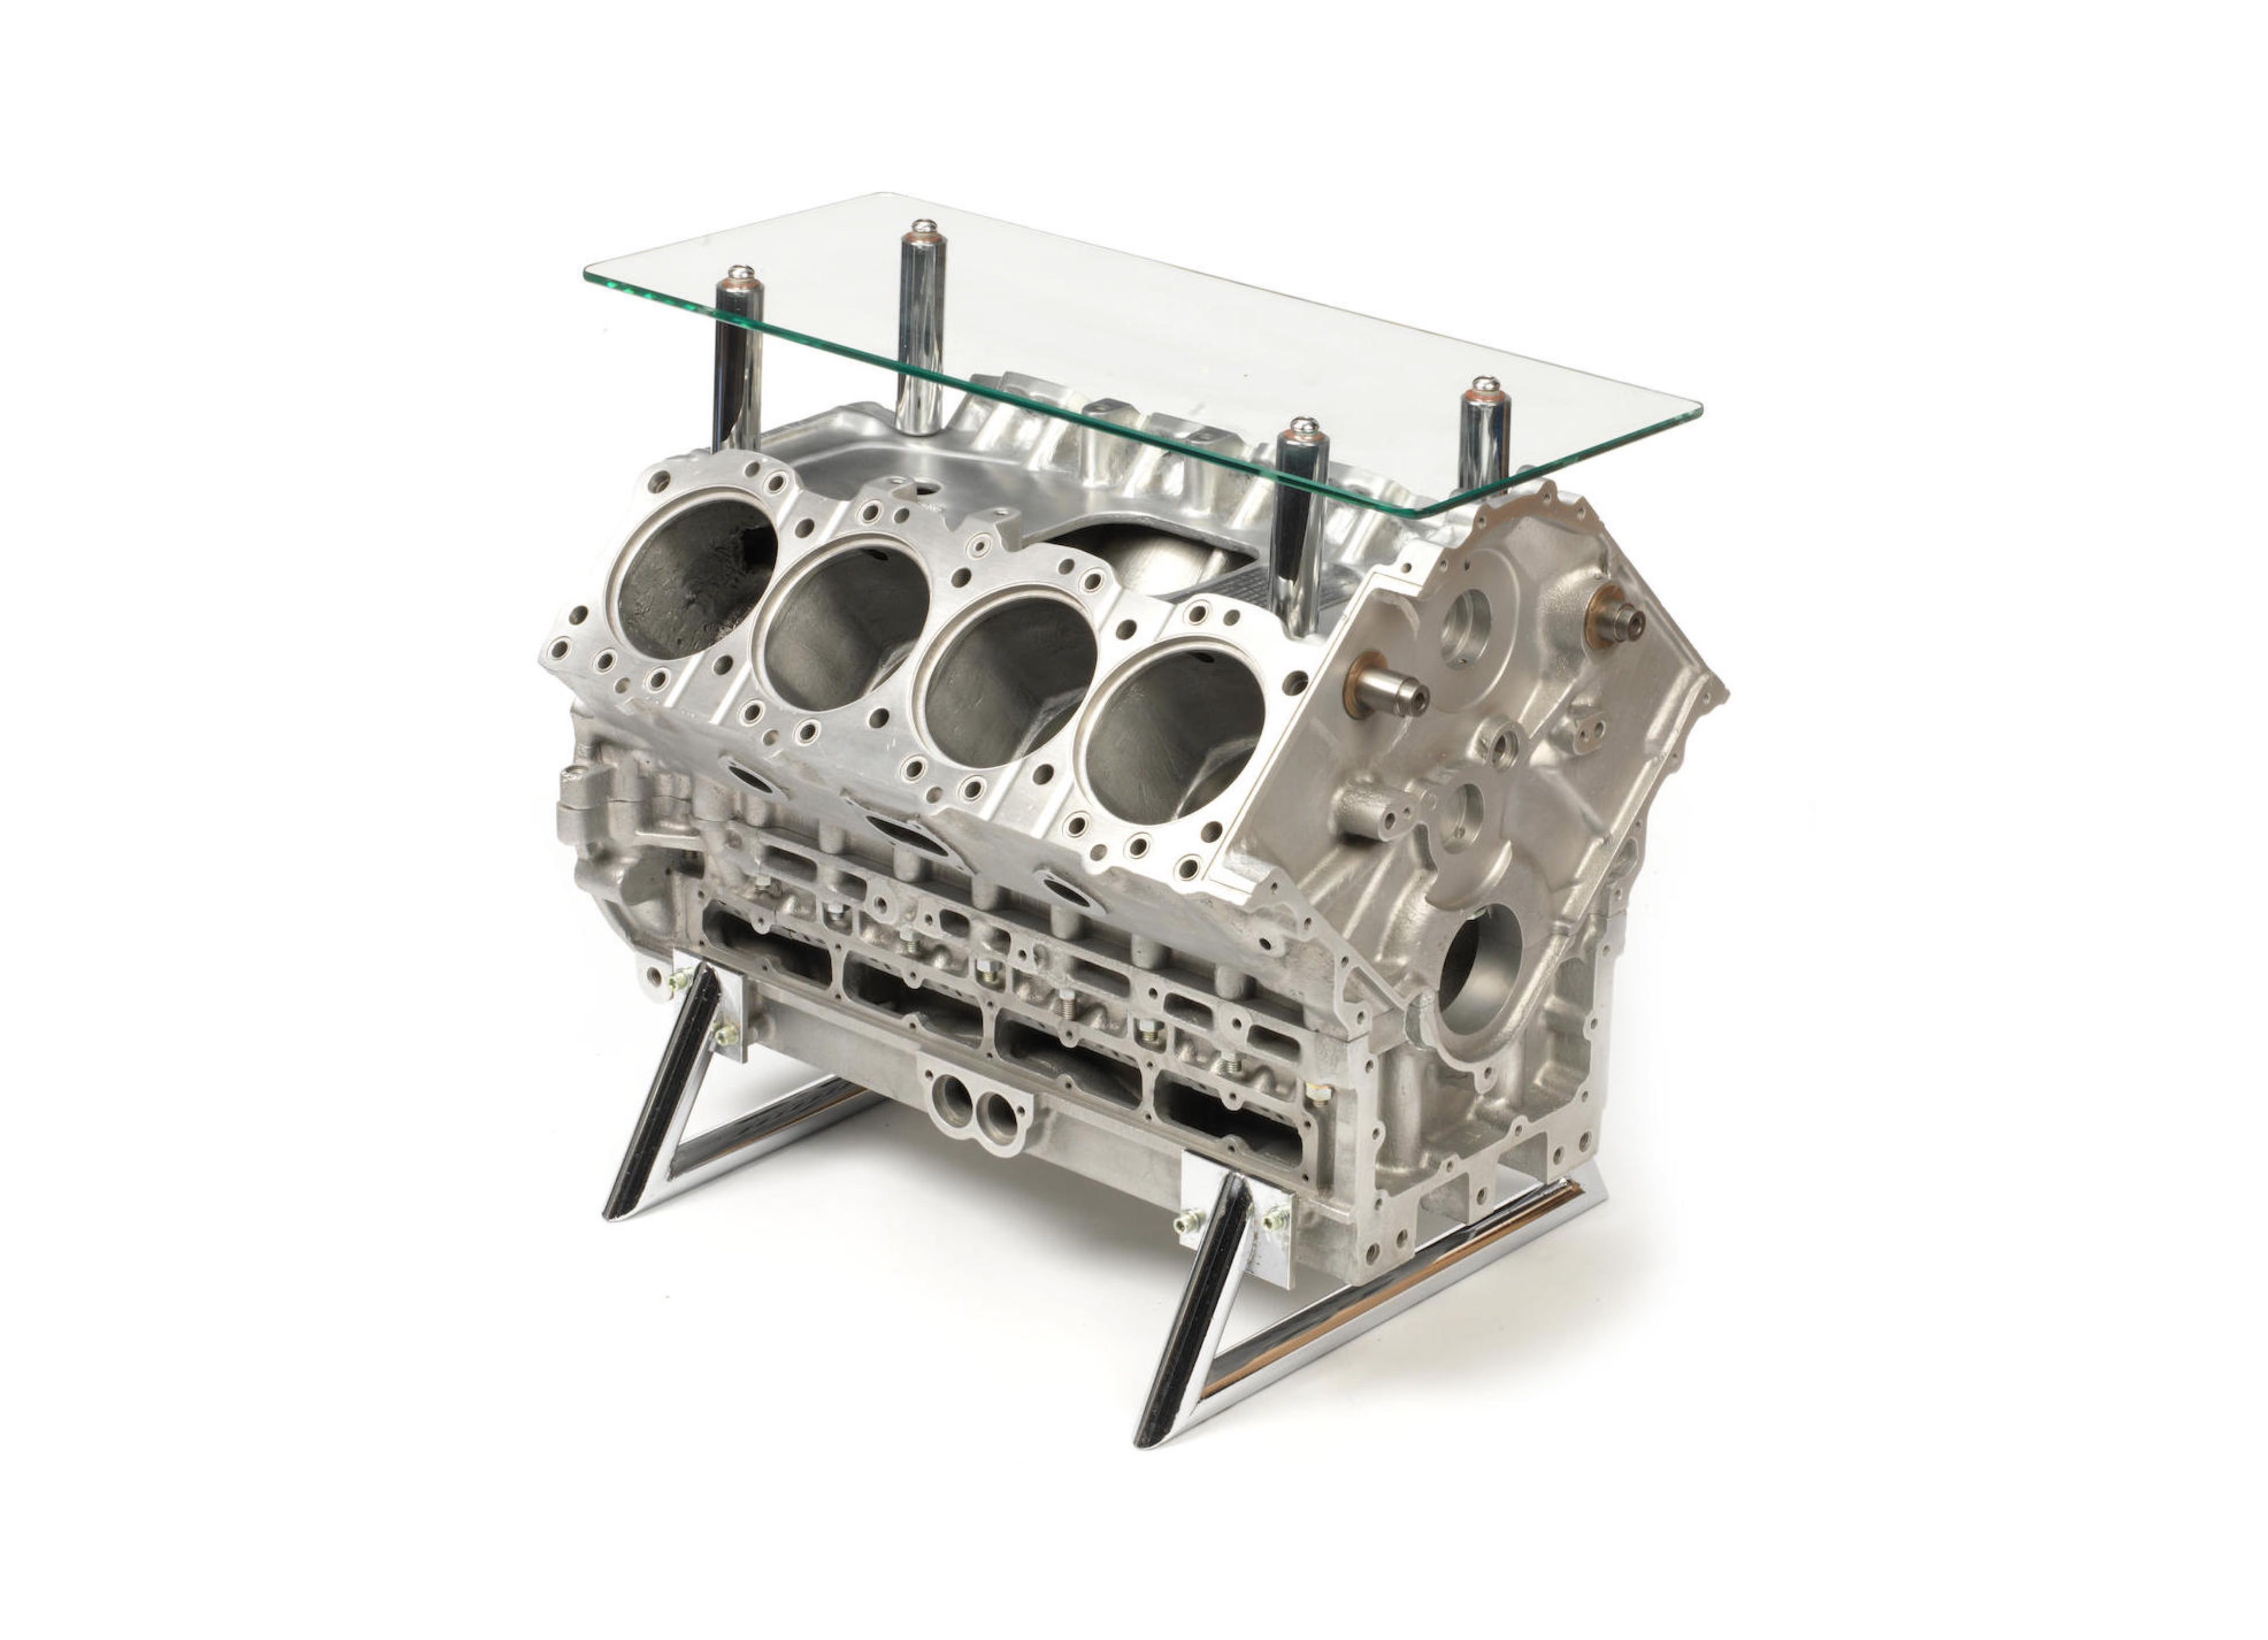 Mclaren Ford Dfv 919 Engine Block Coffee Table